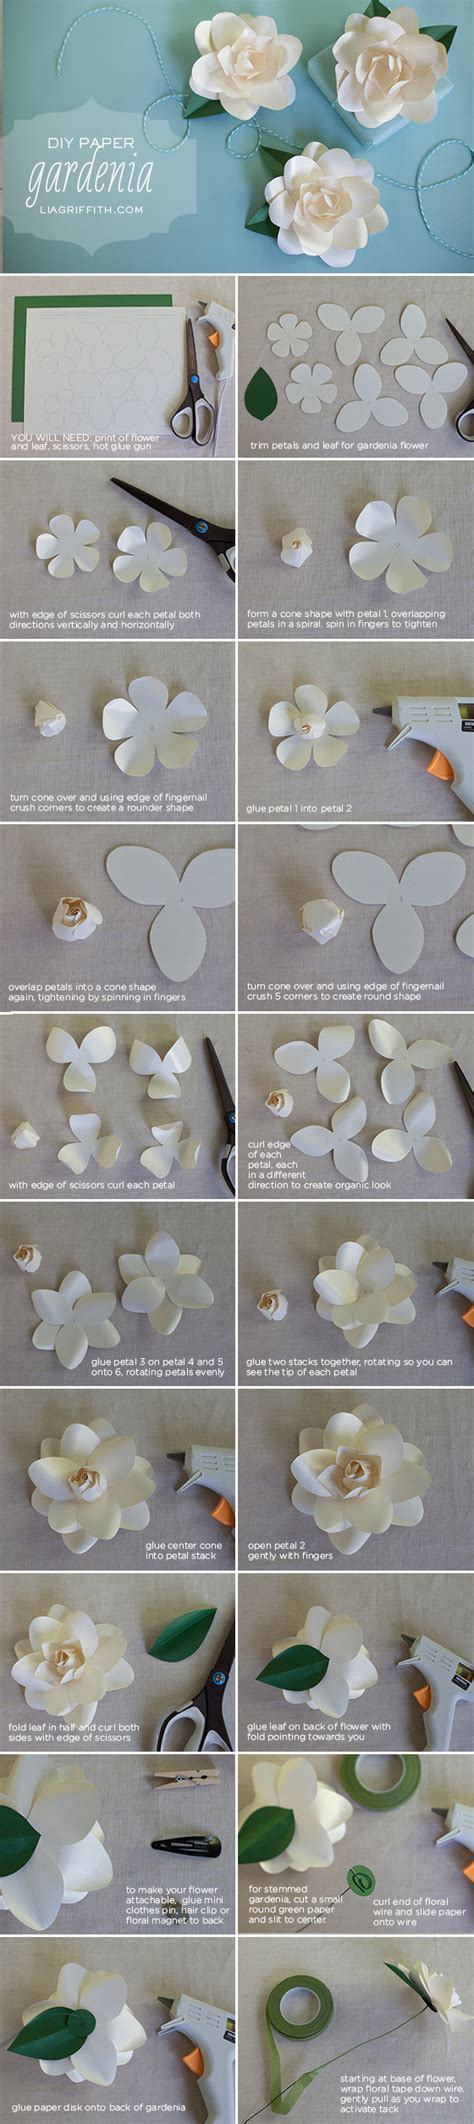 gardenia paper flower tutorial diy metallic paper gardenia lia griffith